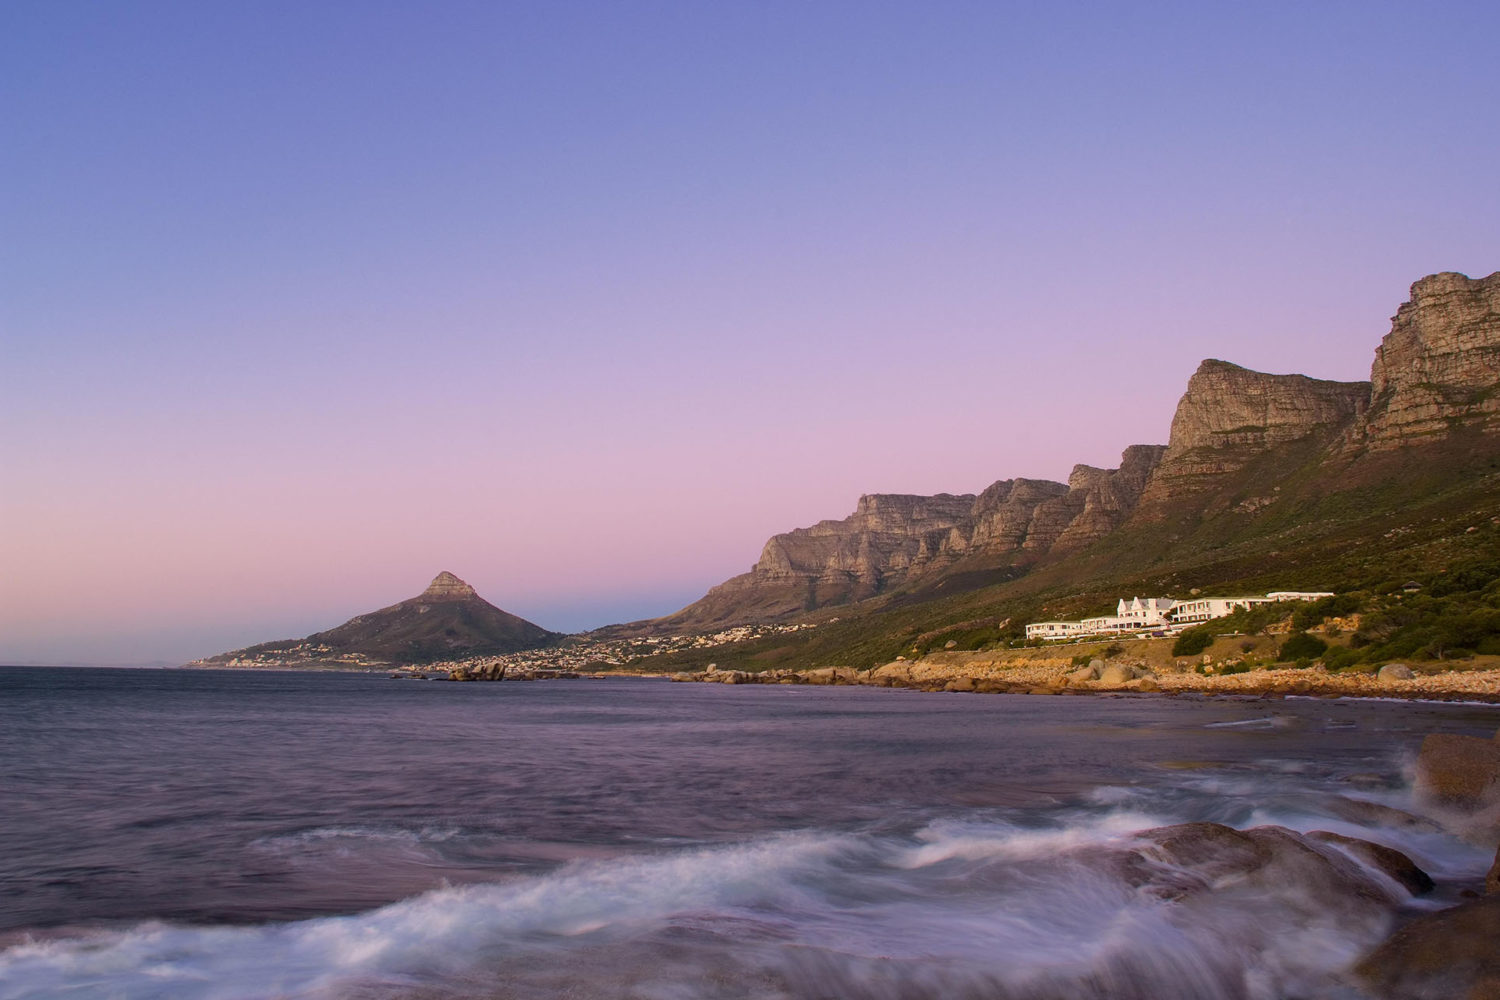 12 apostles hotel cape-town-south-africa-lodges-accommodation-zambia-in-style-location-exterior-views-mountains